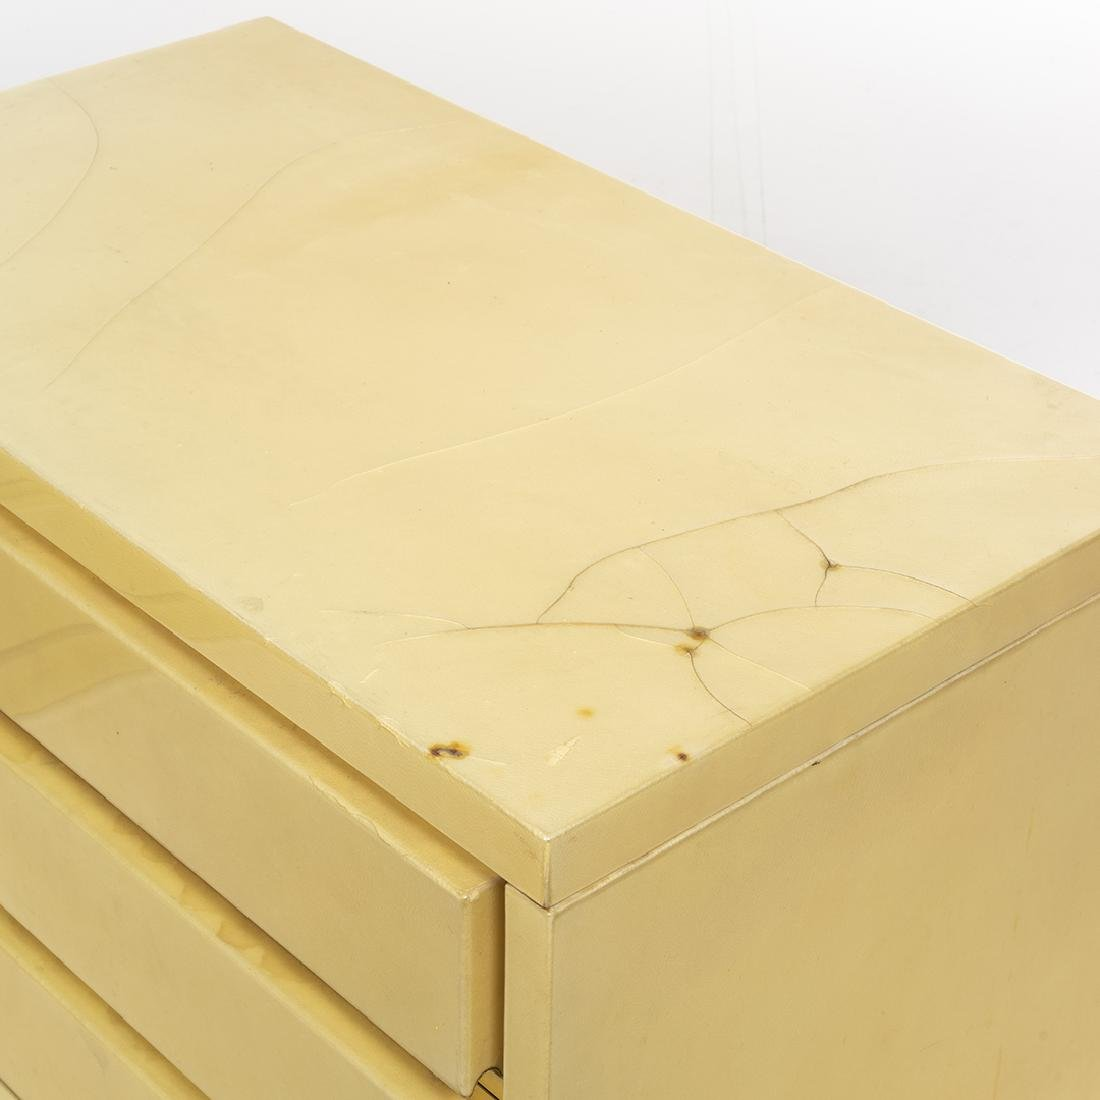 Aldo Tura Nightstands (2) - 3